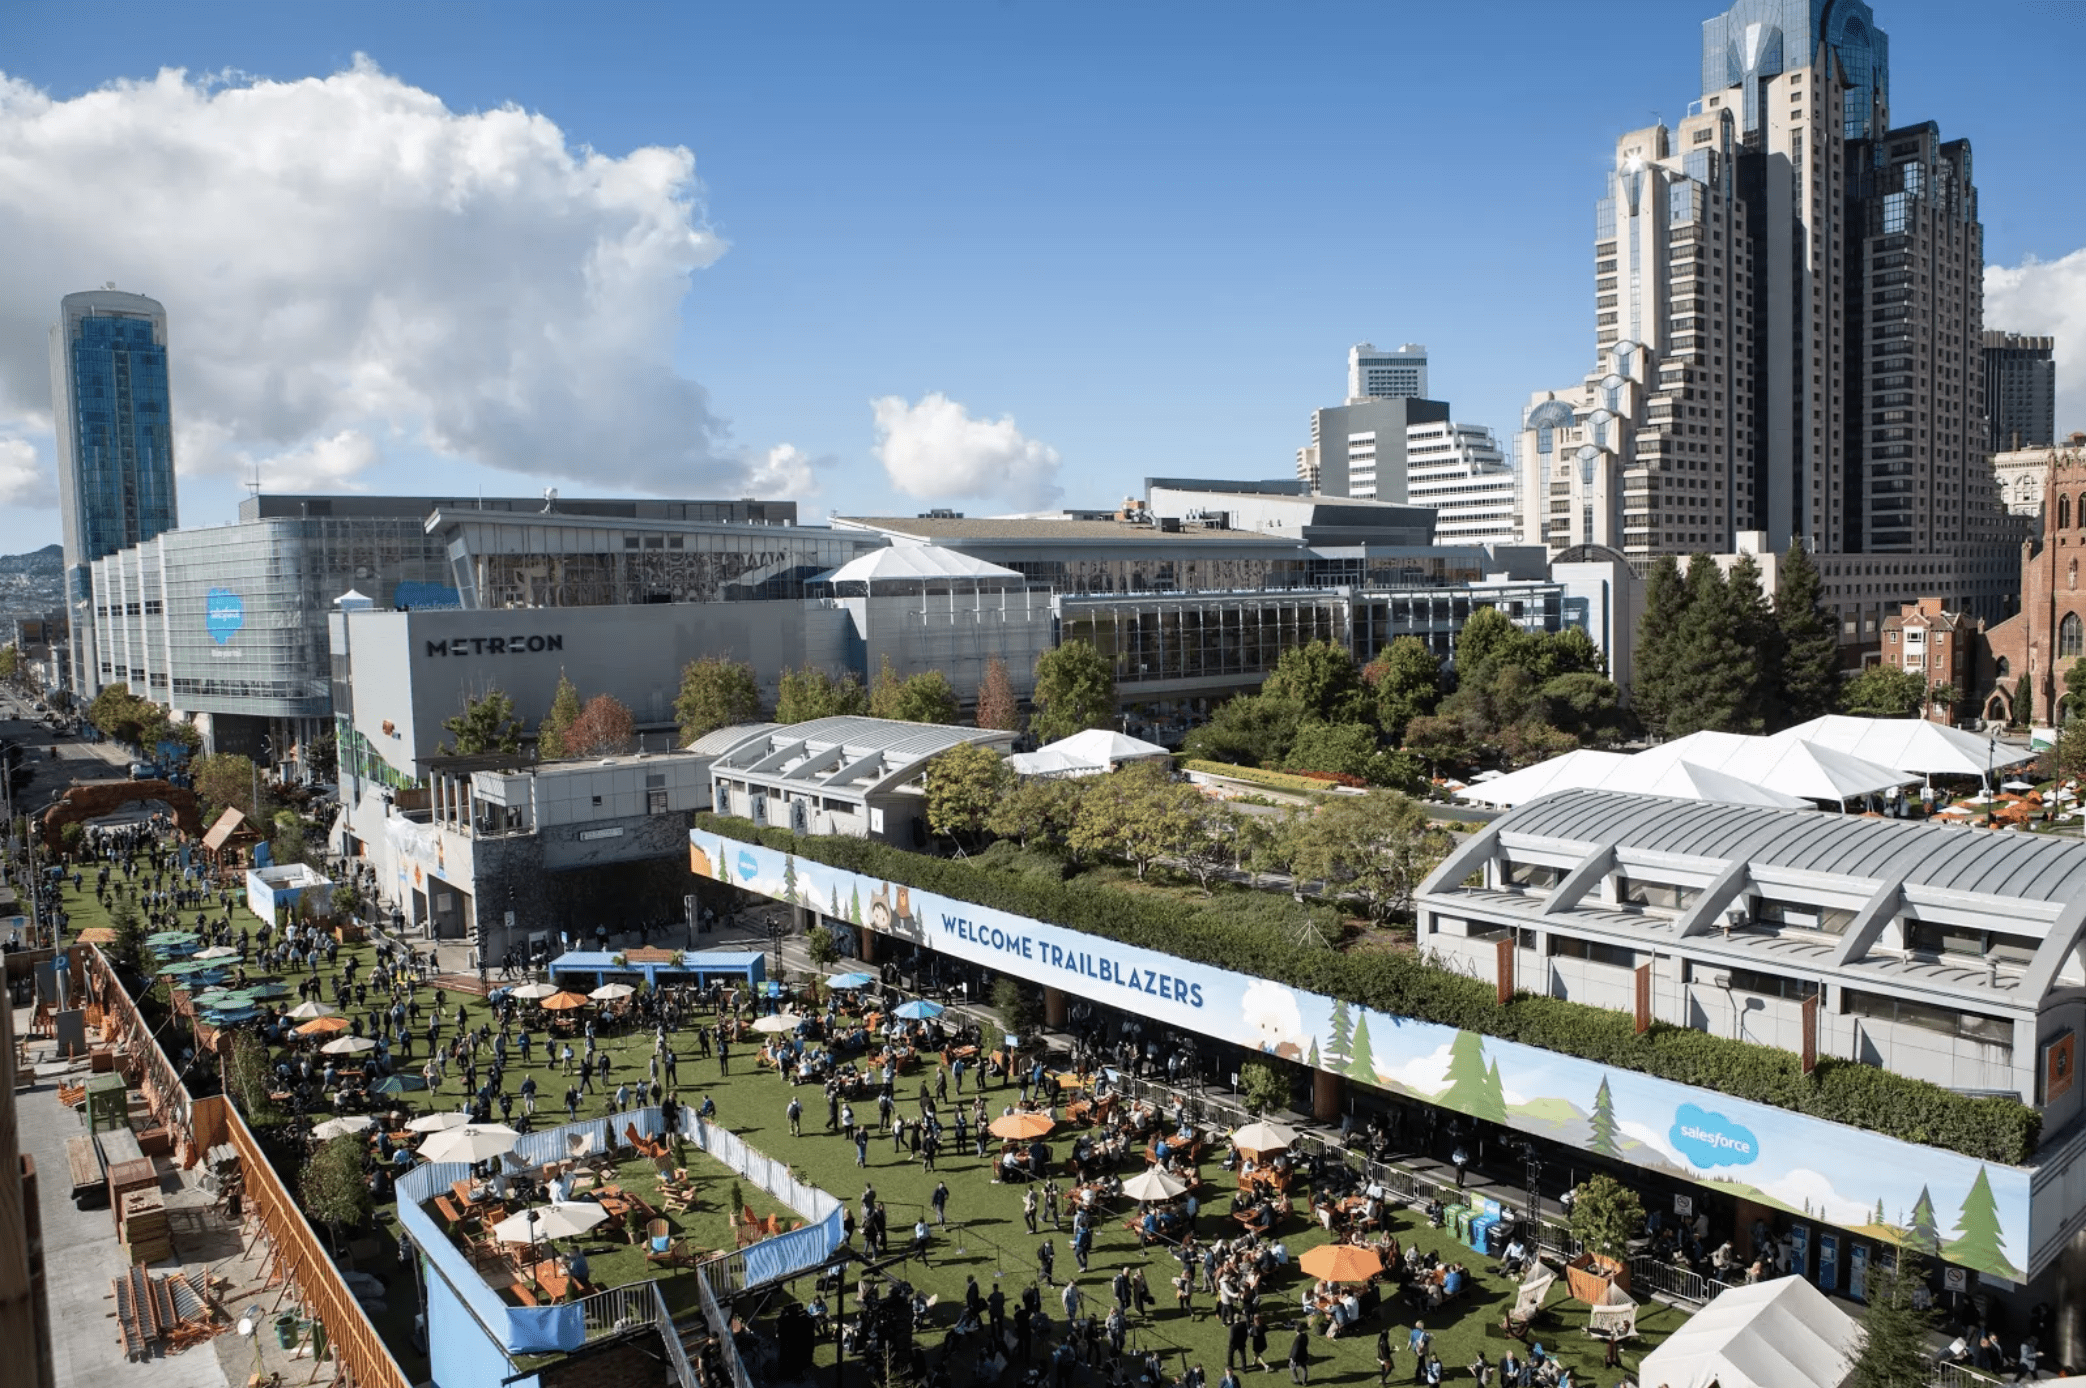 Dreamforce 2018: More than an Event, An Ecosystem